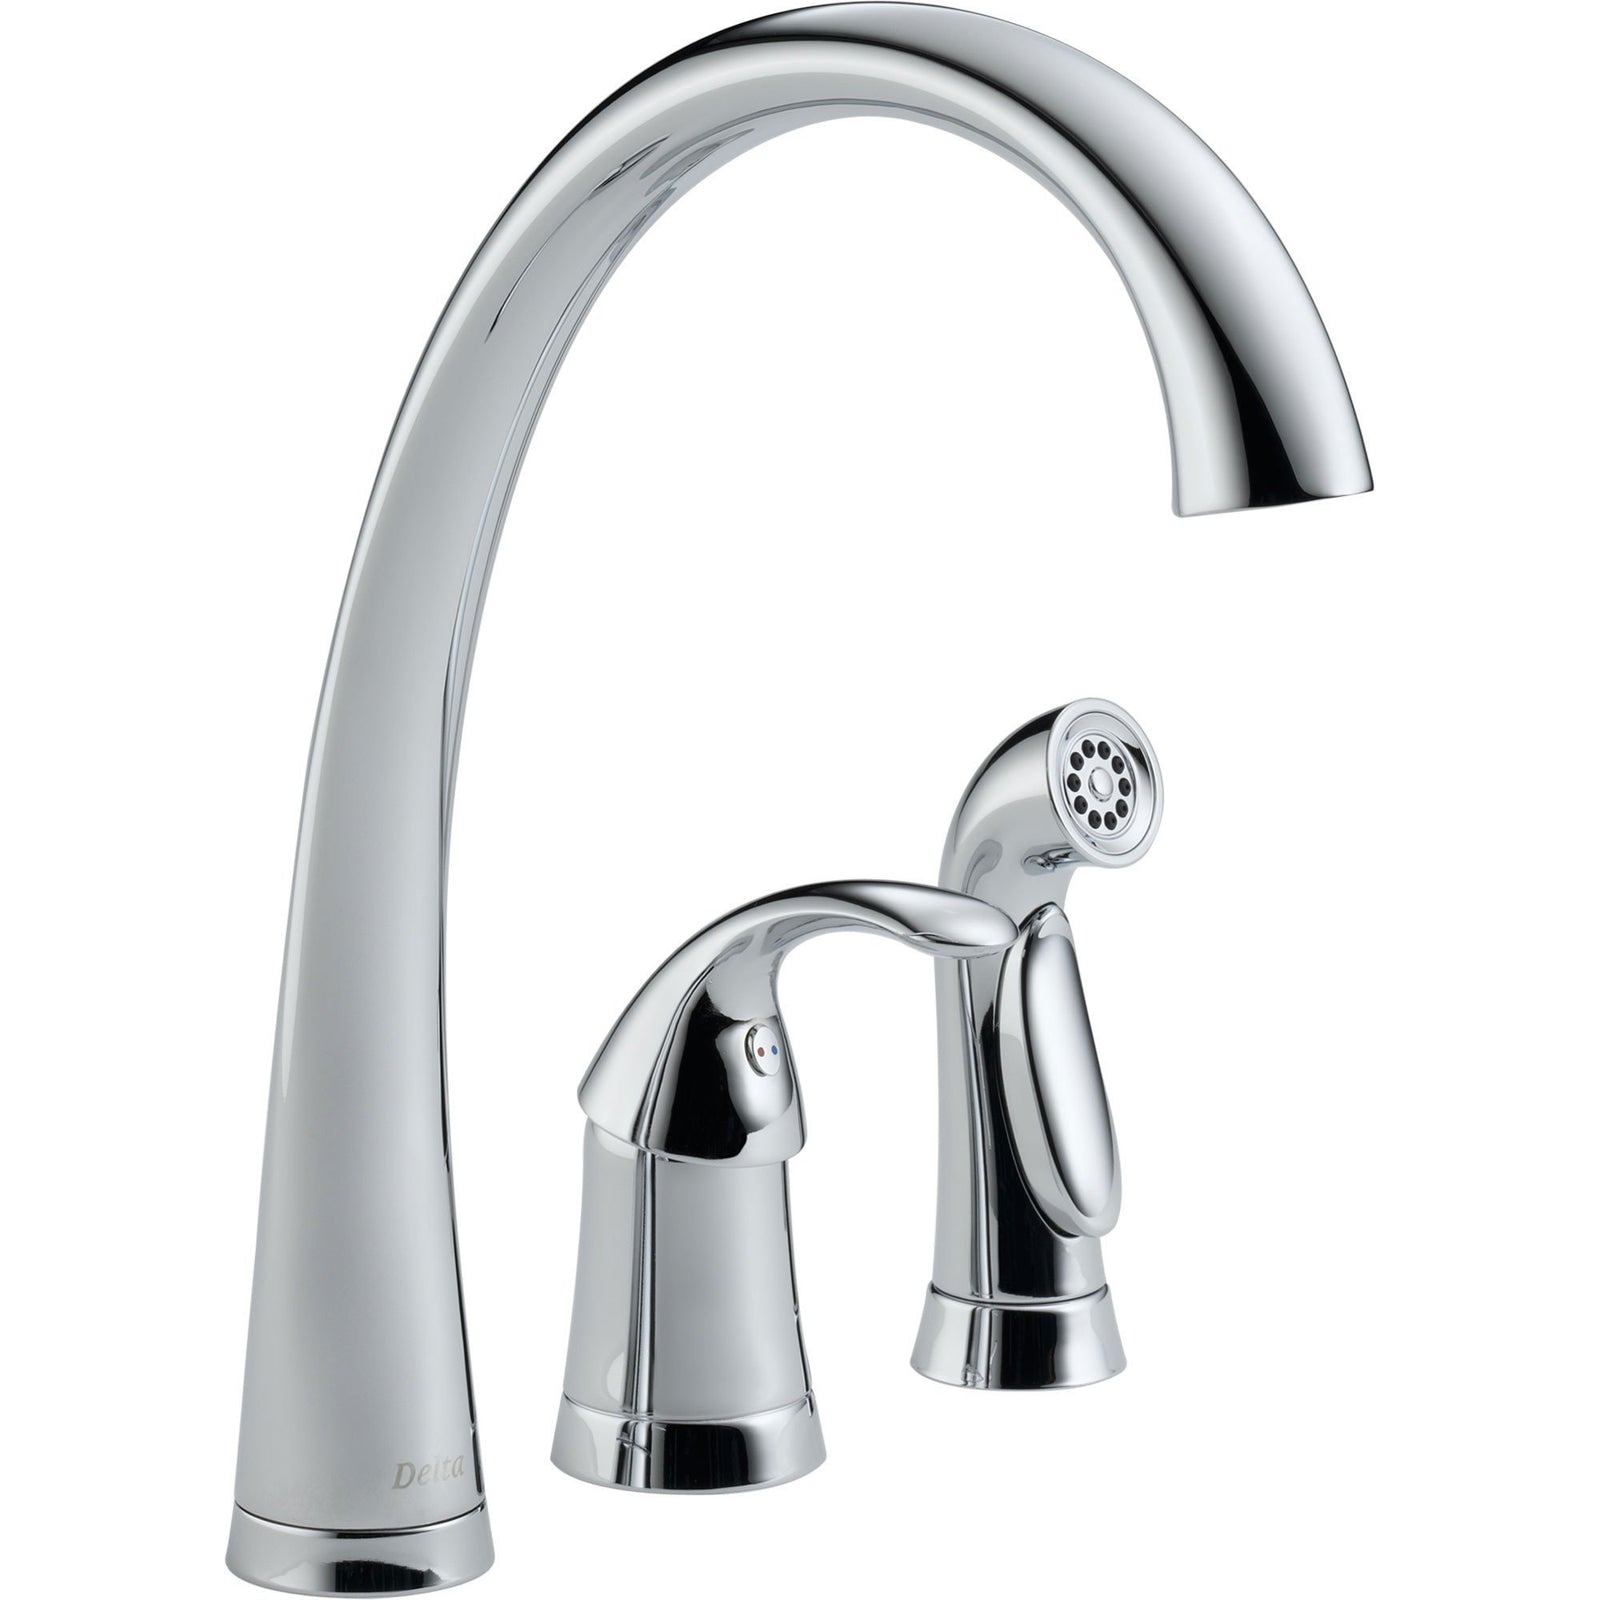 3 Hole Kitchen Faucets - Get a Three Hole Kitchen Sink ...